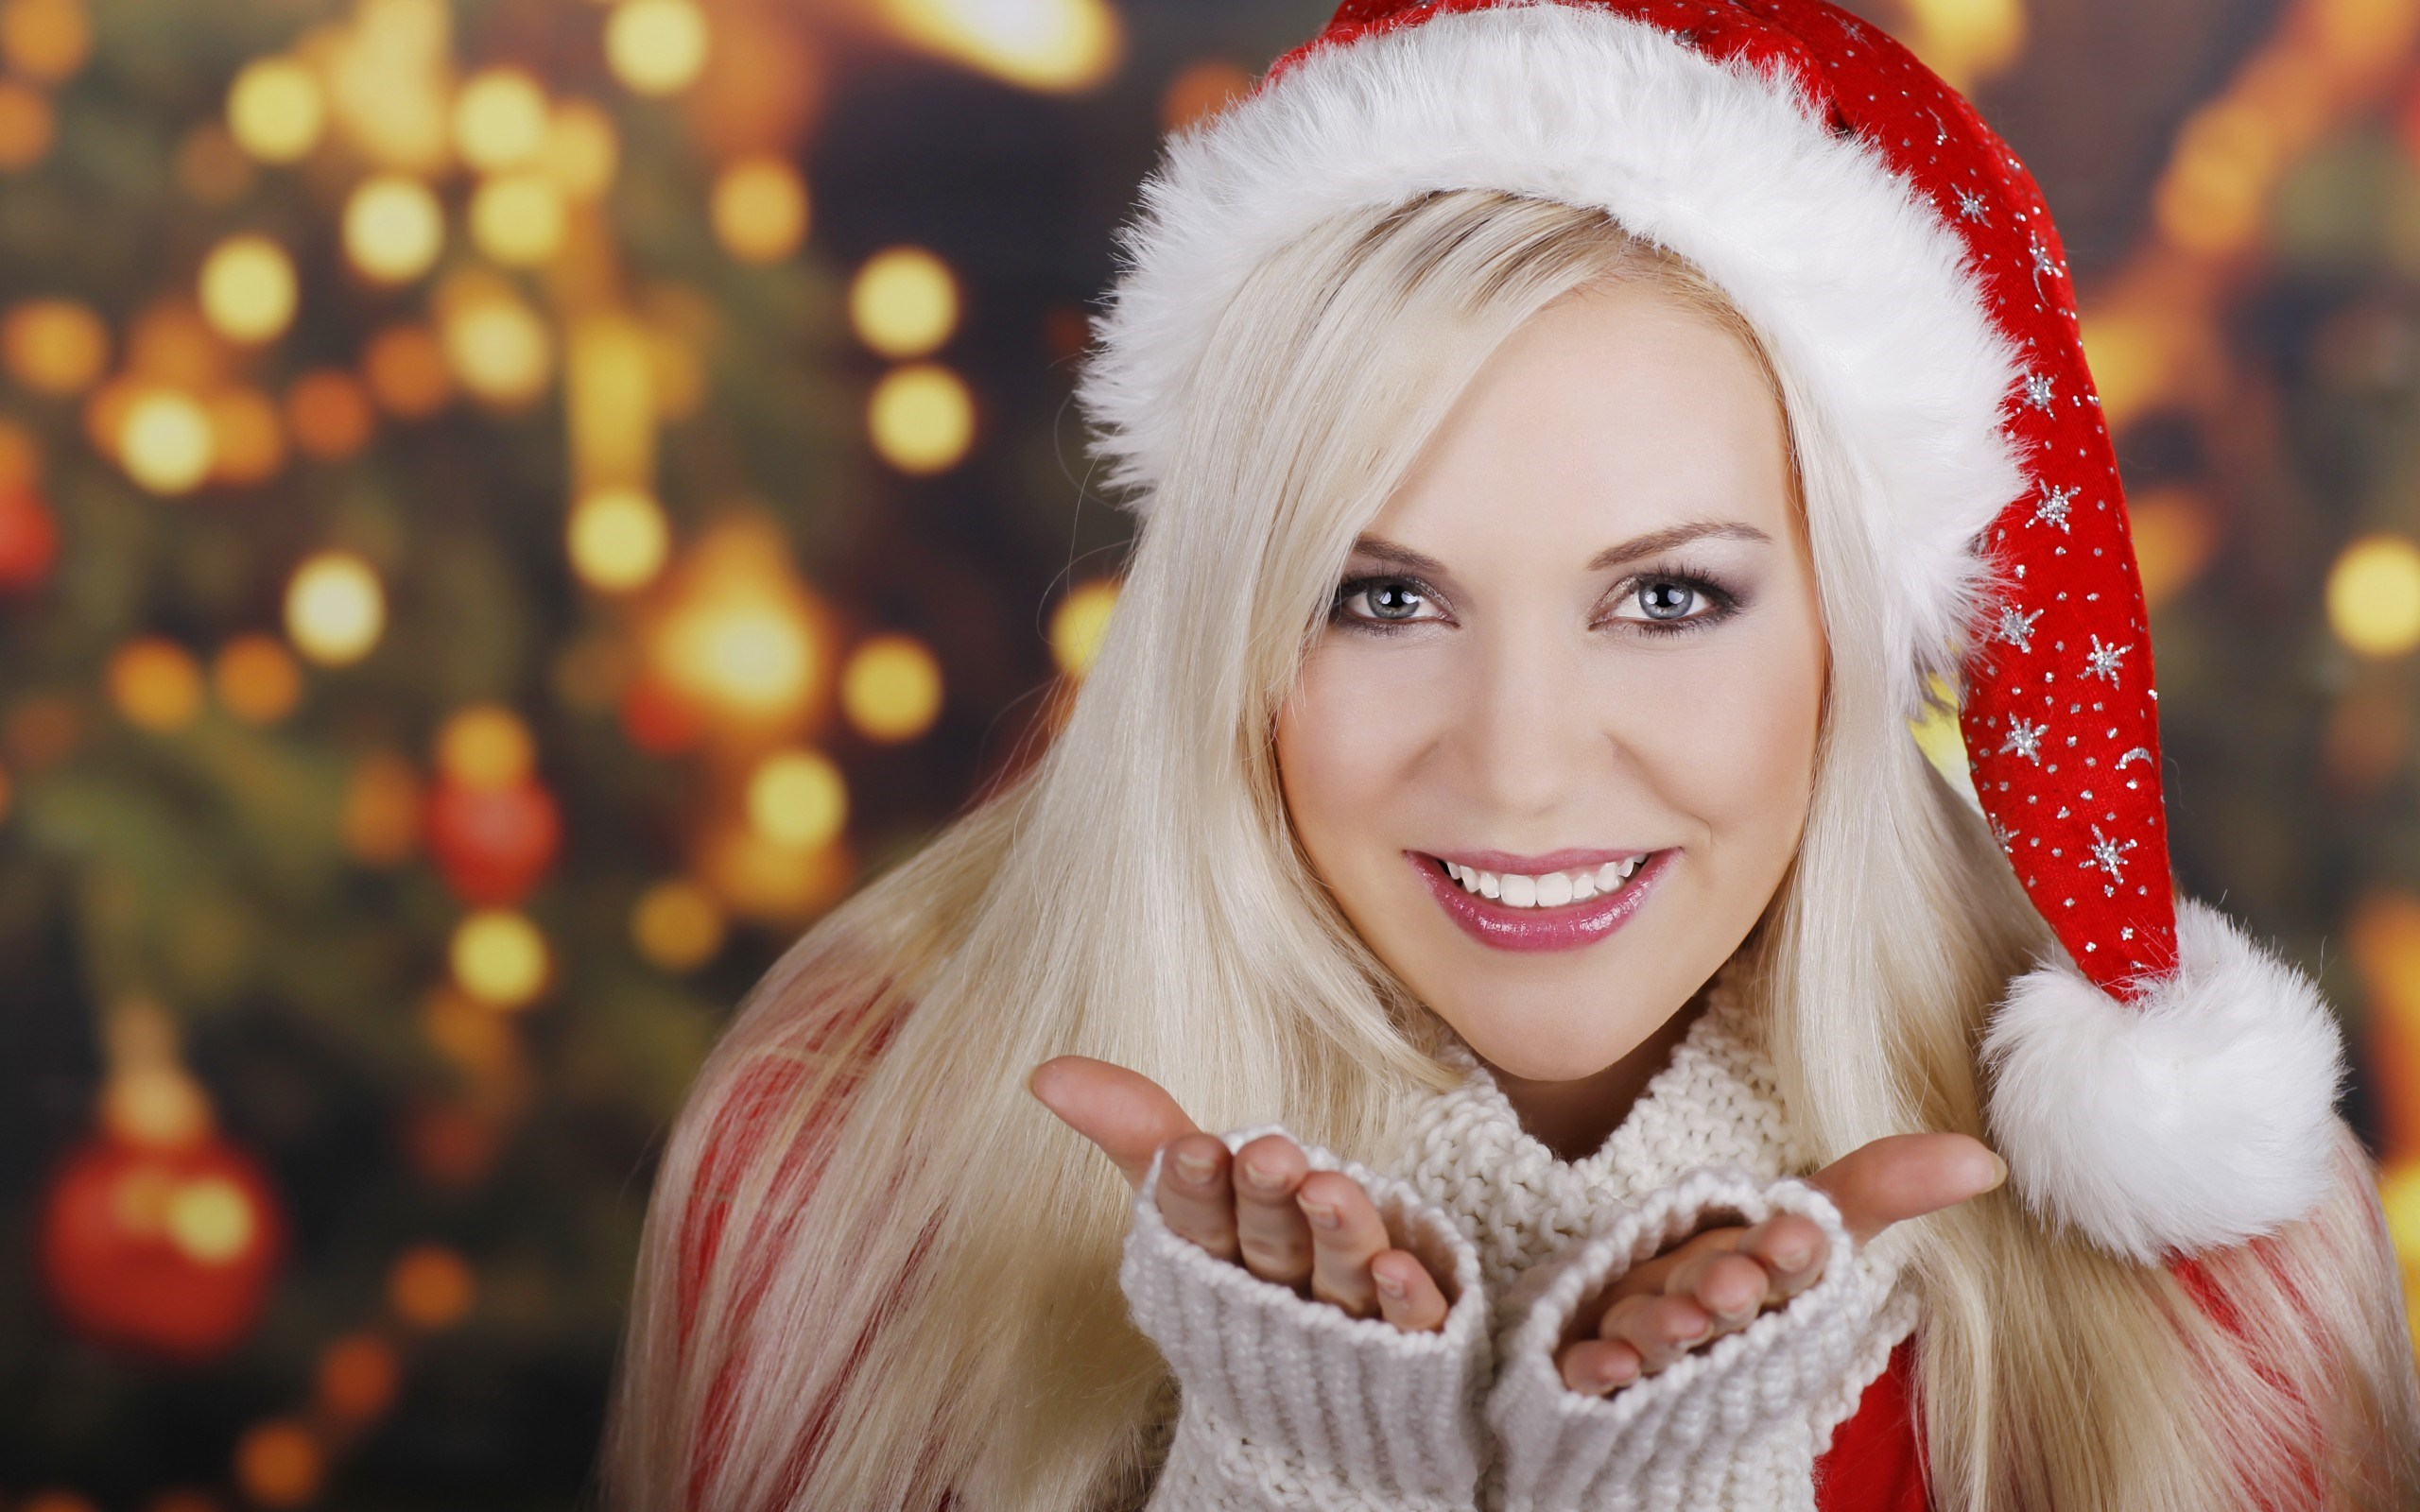 Girl Blonde Smile Christmas Tree New Year